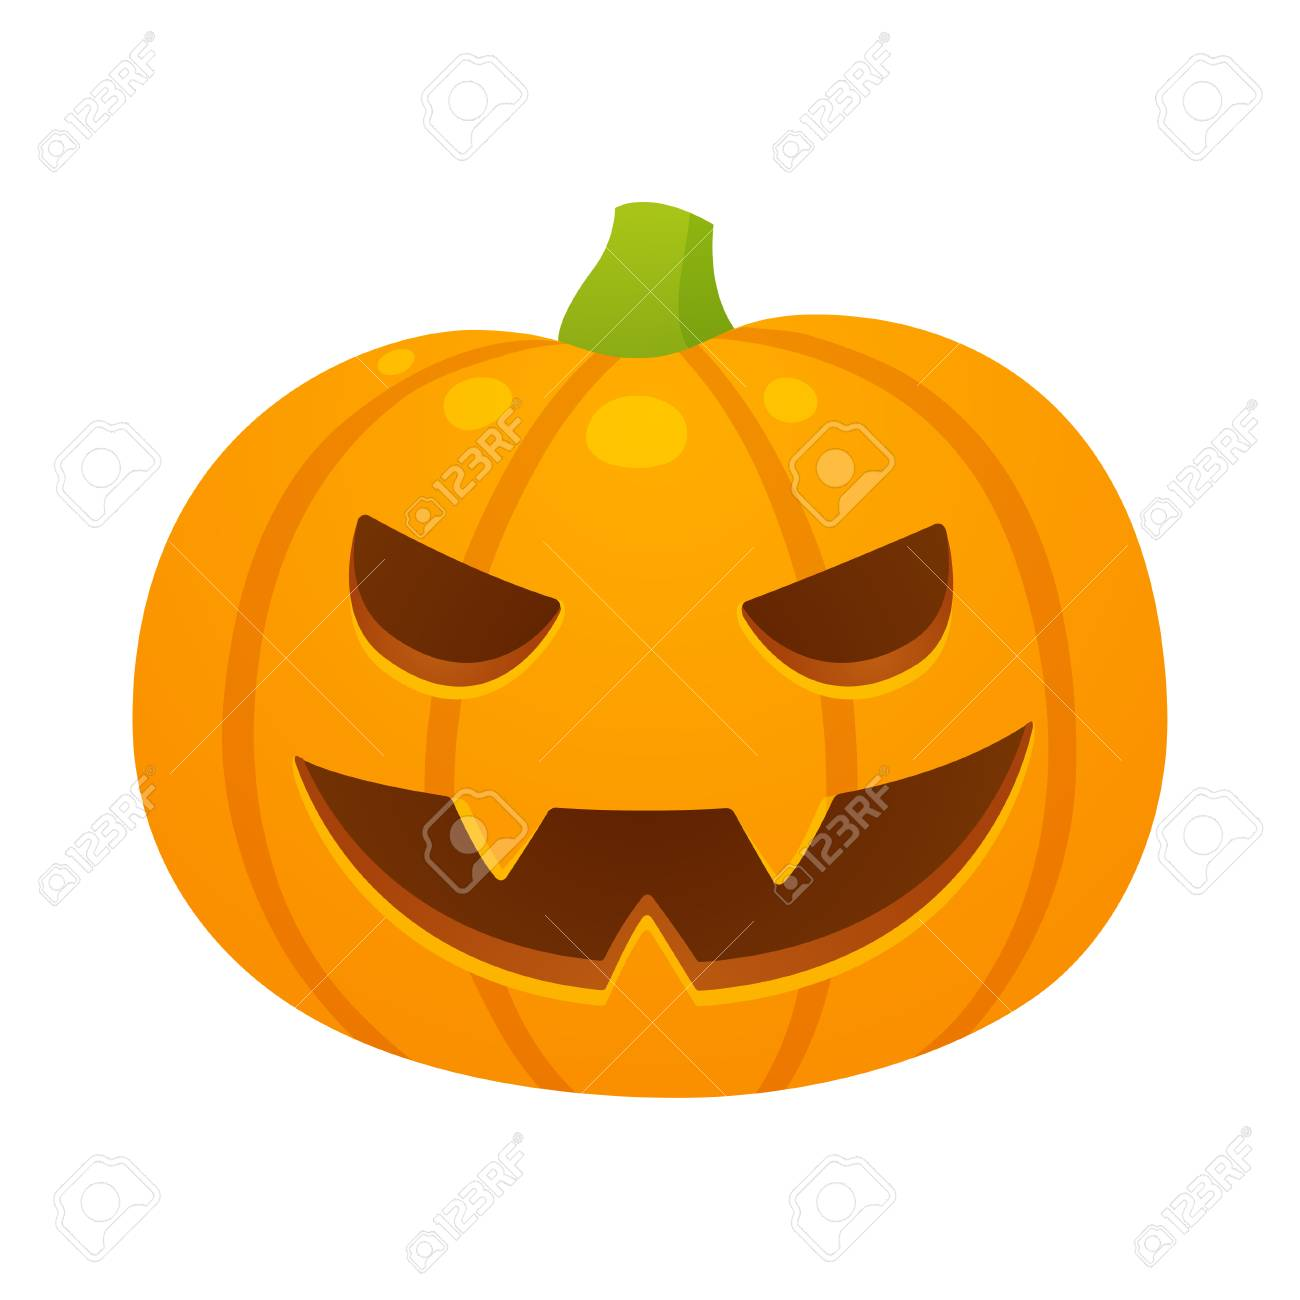 Halloween Pumpkin Drawing Picture.Vector Halloween Pumpkin Illustration With Evil Carved Face